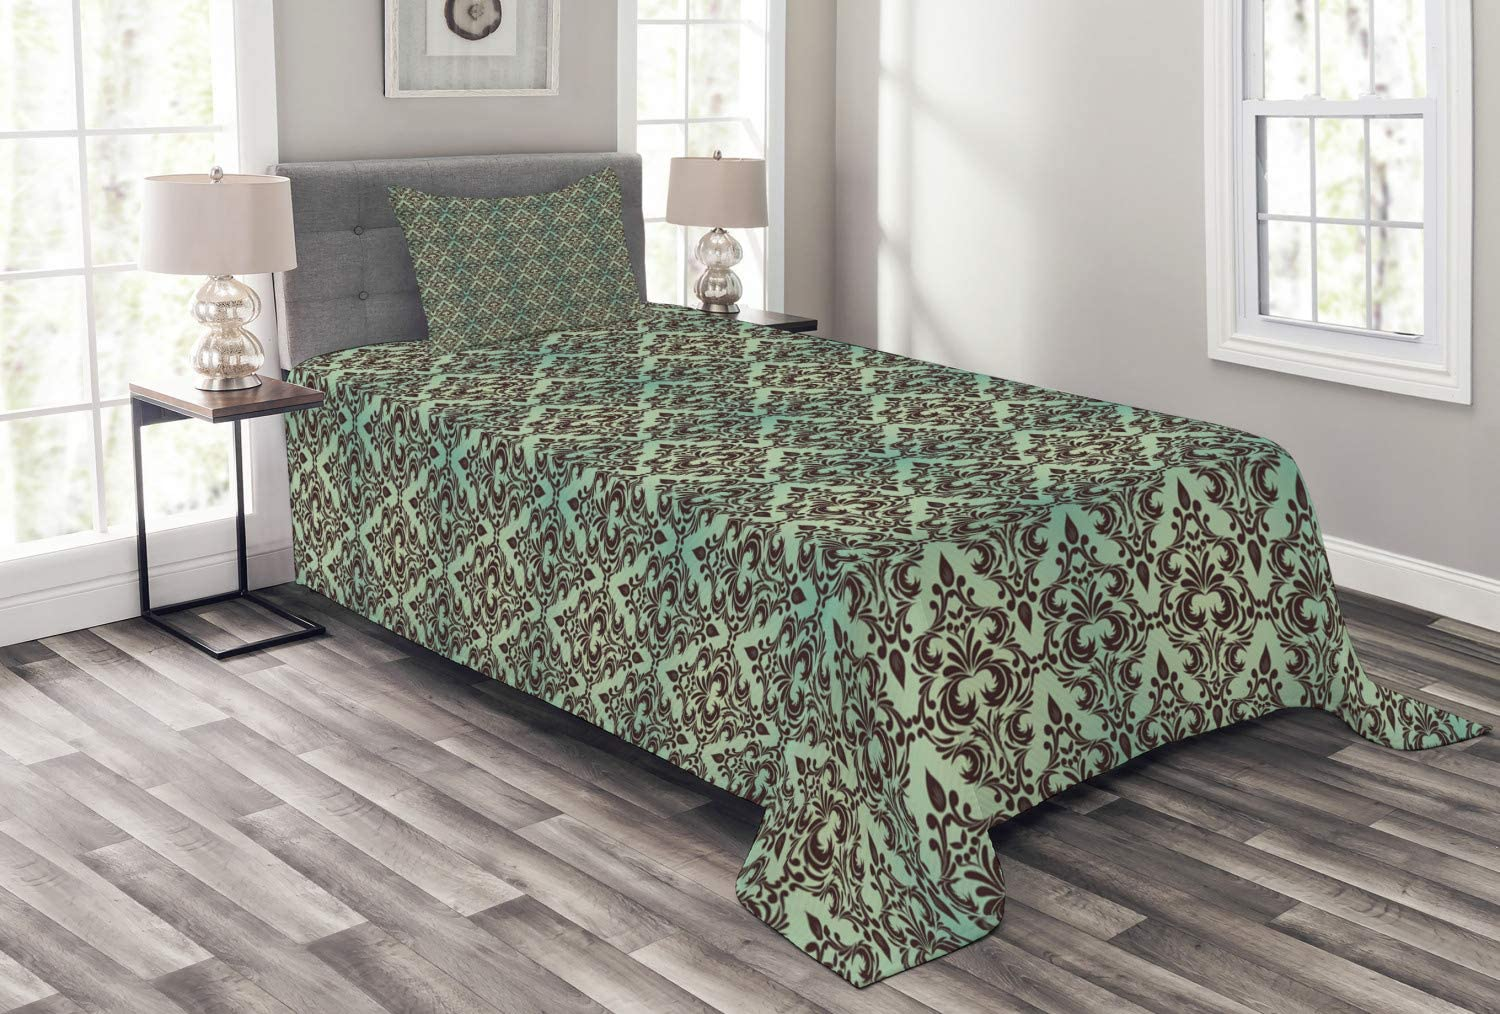 Ambesonne New products world's highest quality popular Mint and Brown Bedspread Ranking TOP15 Dam Flower in Motifs Baroque